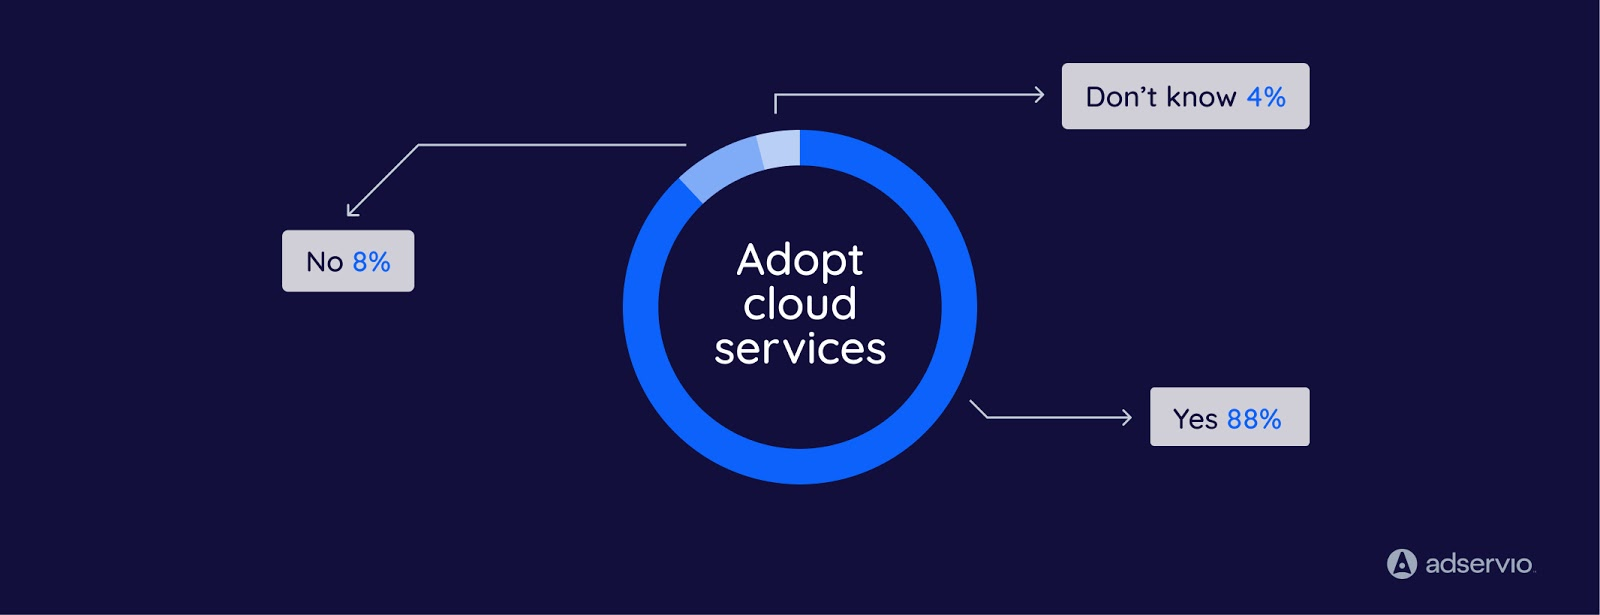 how much are cloud services adopted in organizations